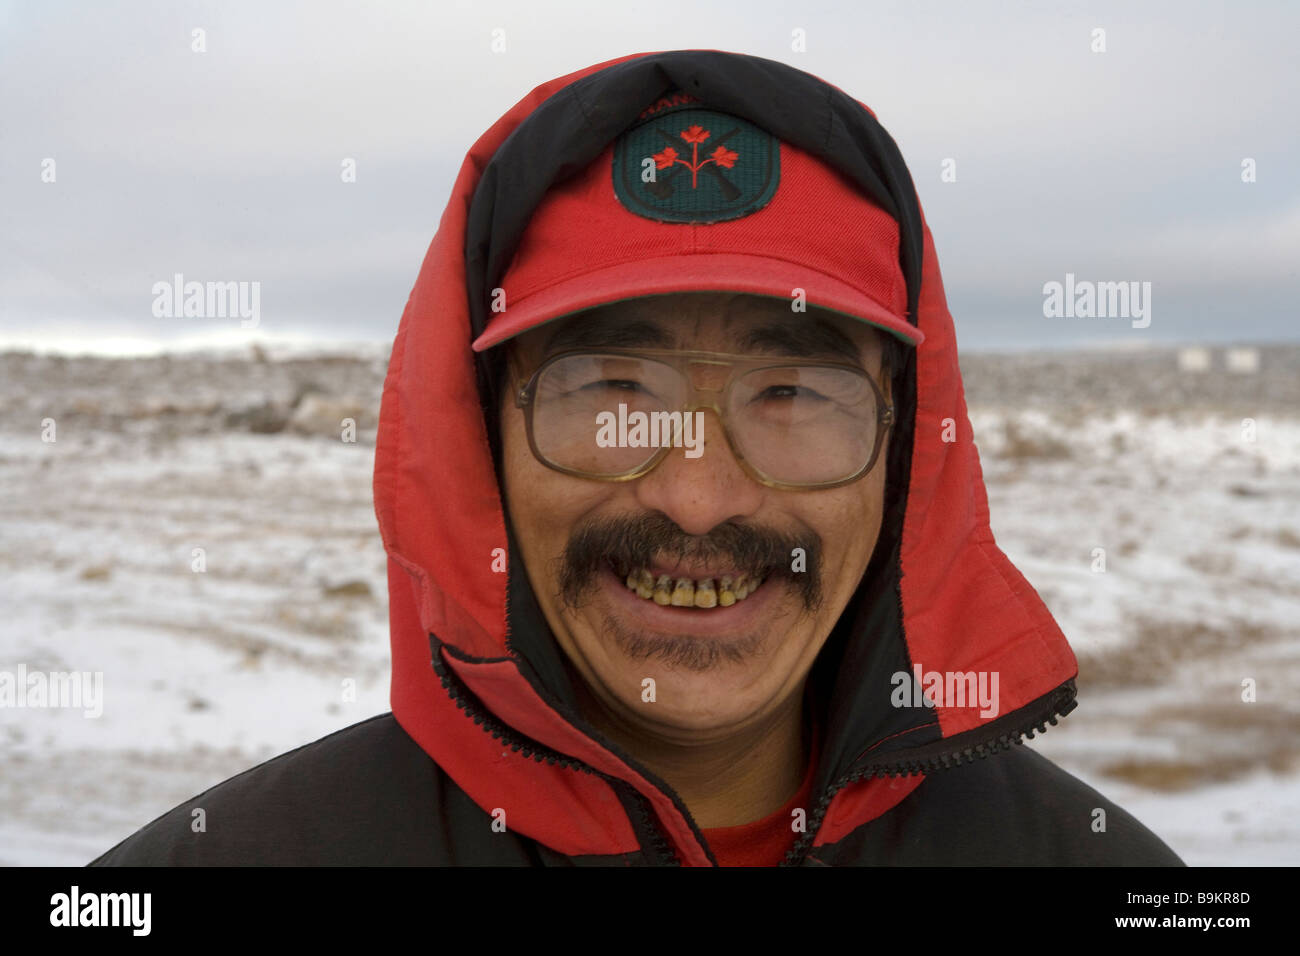 Canadian Ranger on training exercise, portrait, Canadian Arctic, Canada Stock Photo